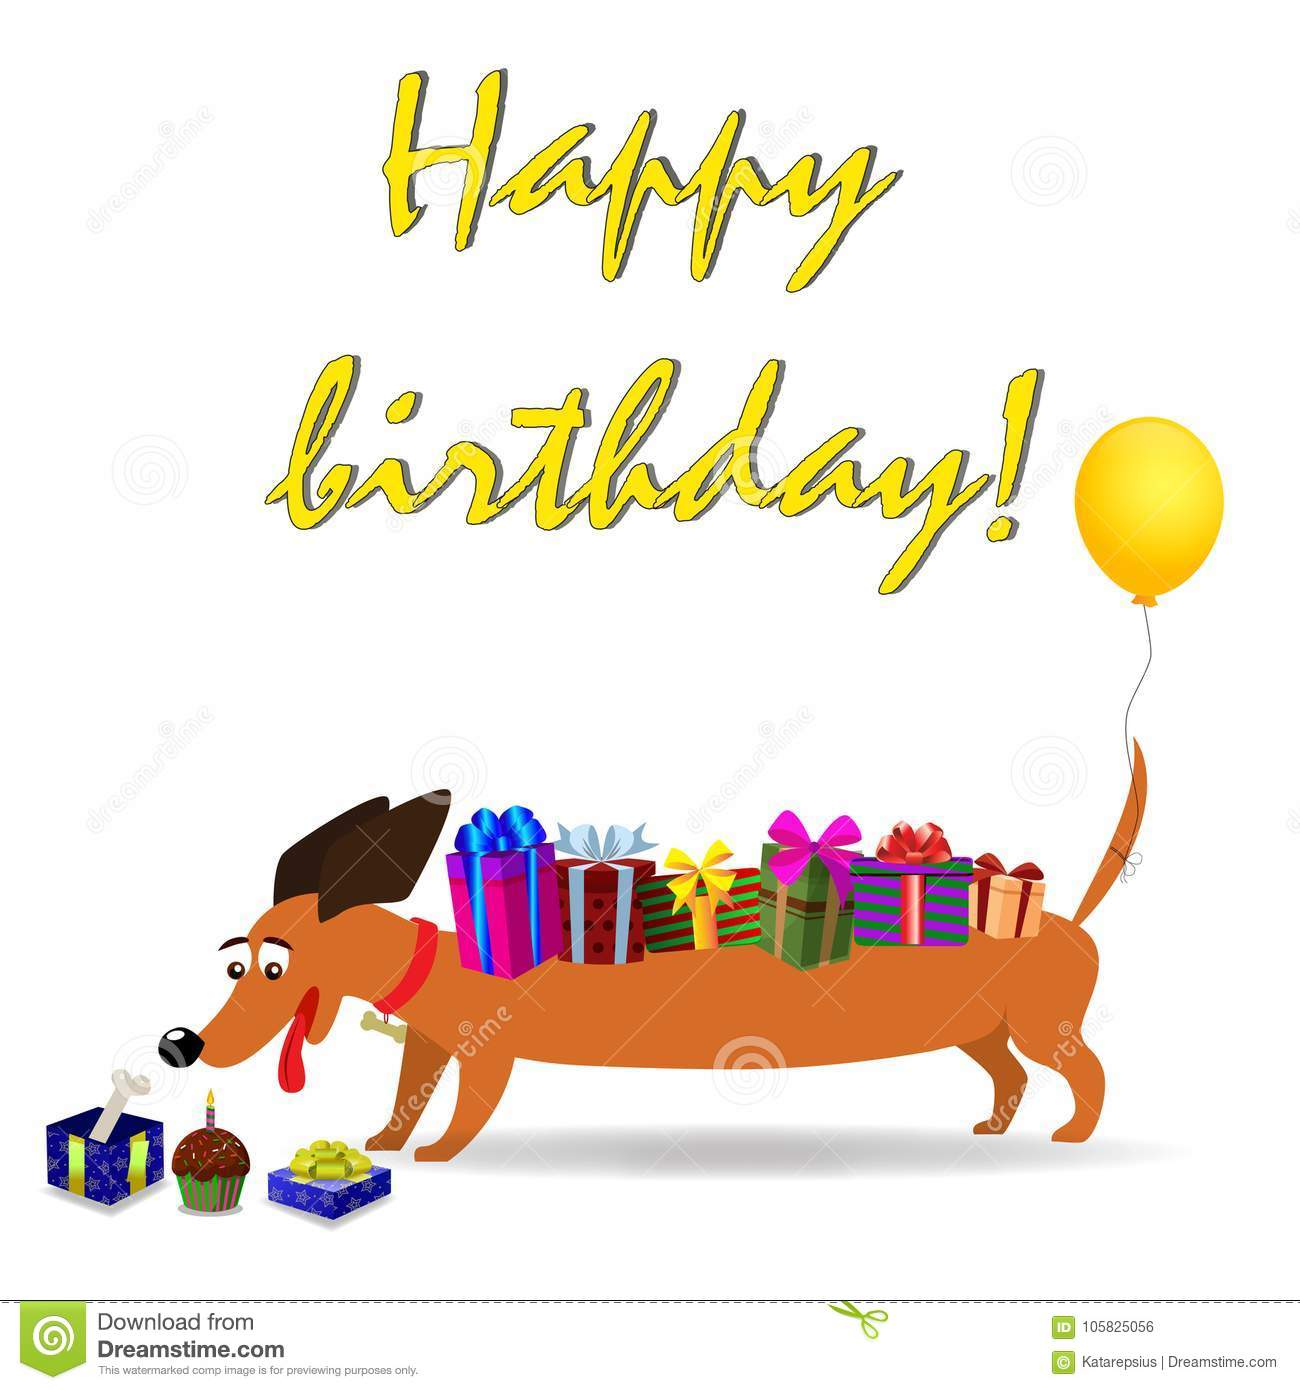 Happy birthday greeting card with dachshund stock vector happy birthday greeting card with dachshund m4hsunfo